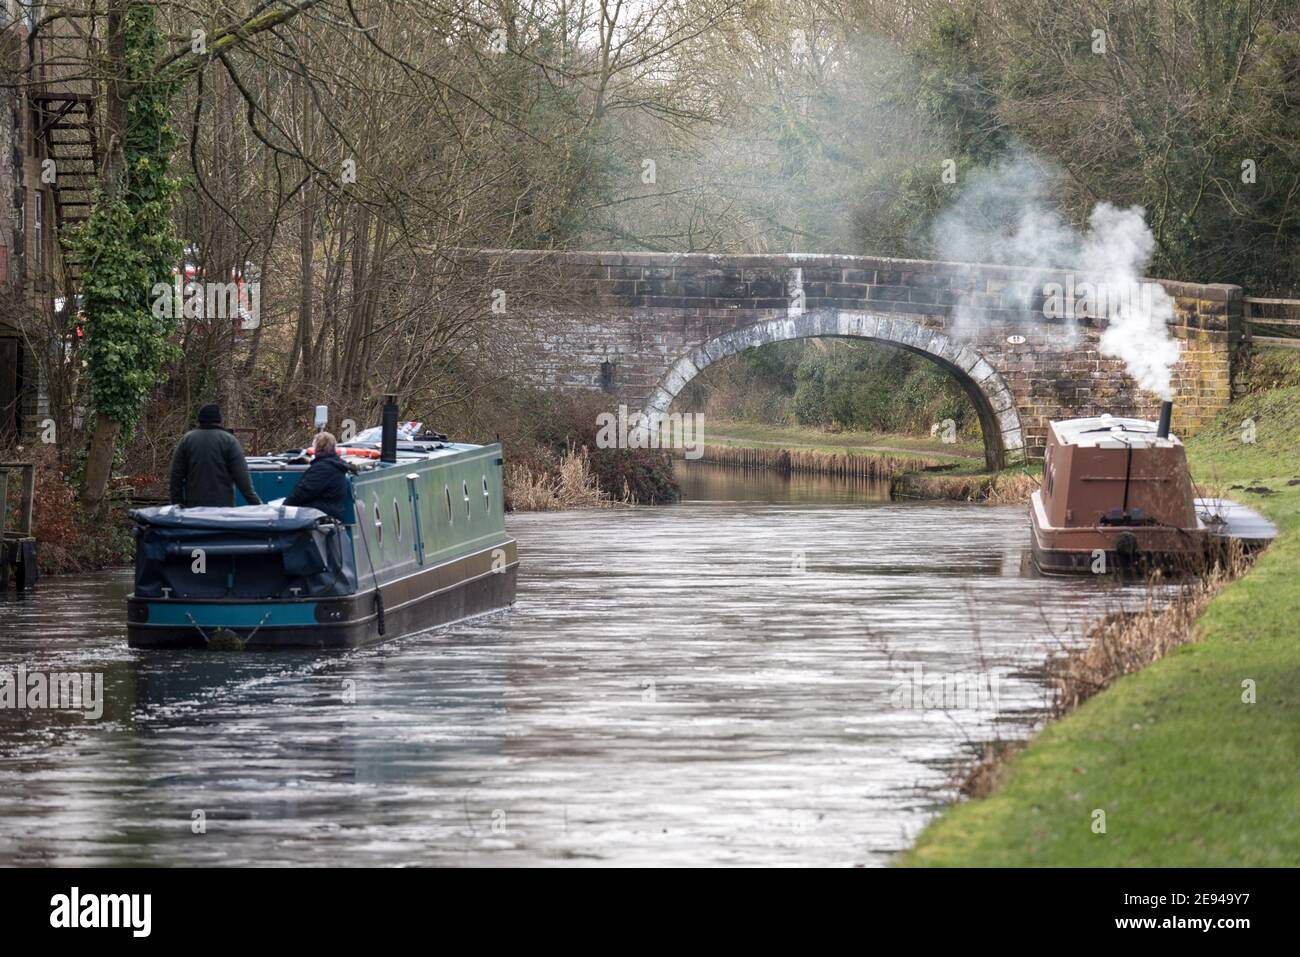 A narrowboat cutting a path through the ice on a frozen canal. Stock Photo